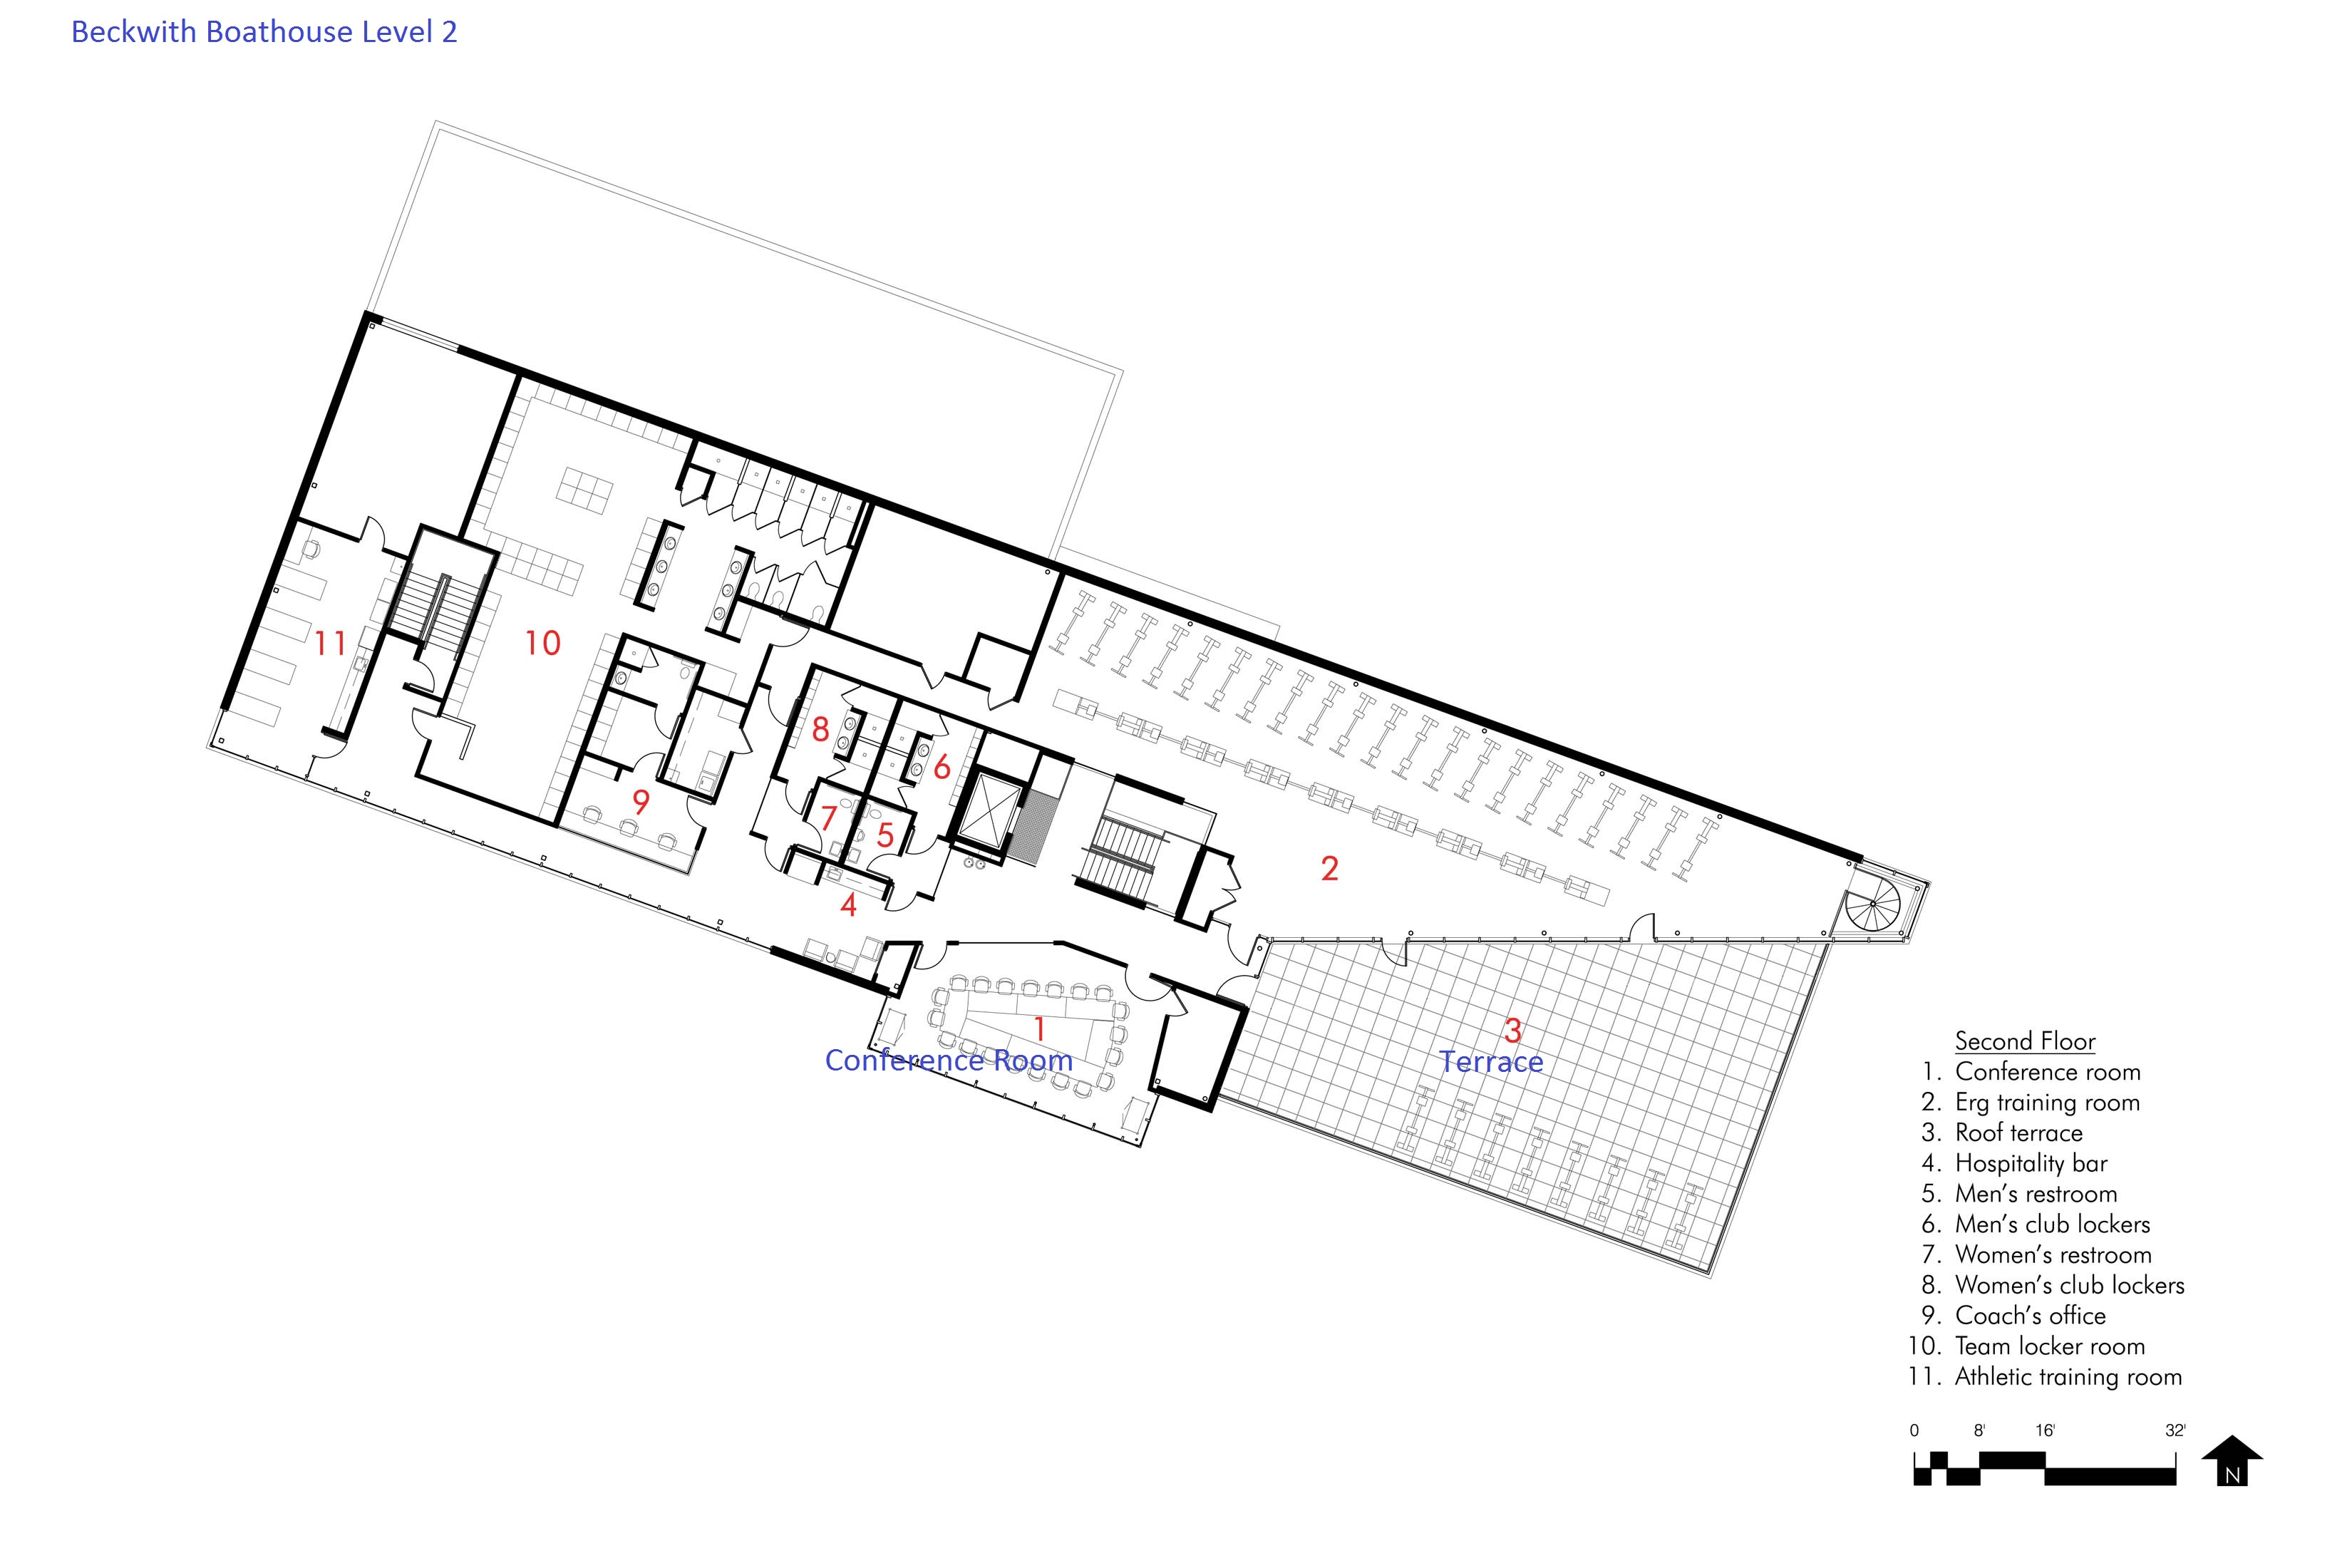 Beckwith Floor Plan (Level 2)